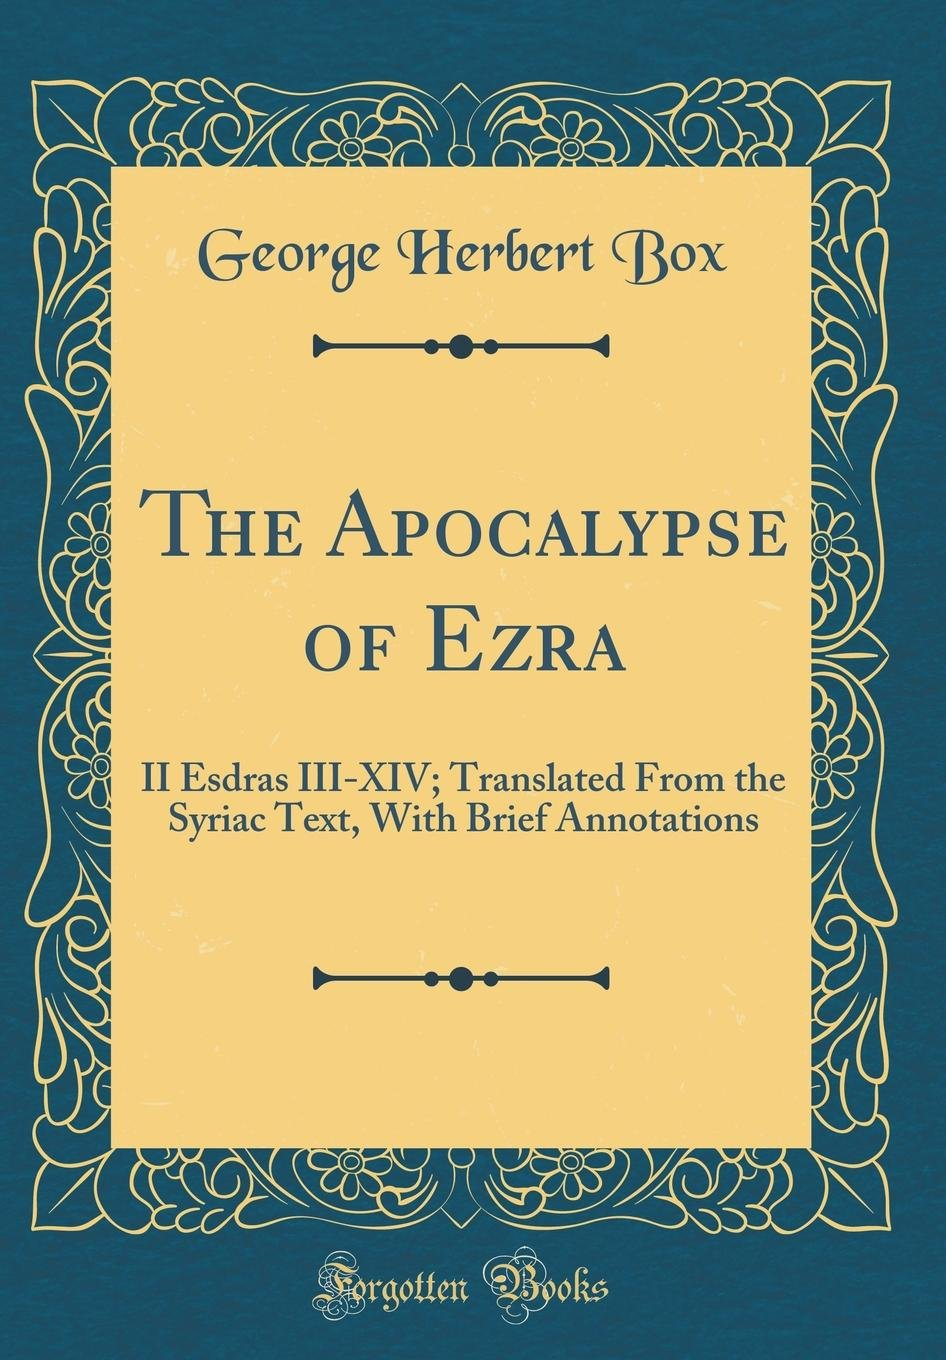 The Apocalypse of Ezra: II Esdras III-XIV; Translated from the Syriac Text, with Brief Annotations (Classic Reprint) ebook